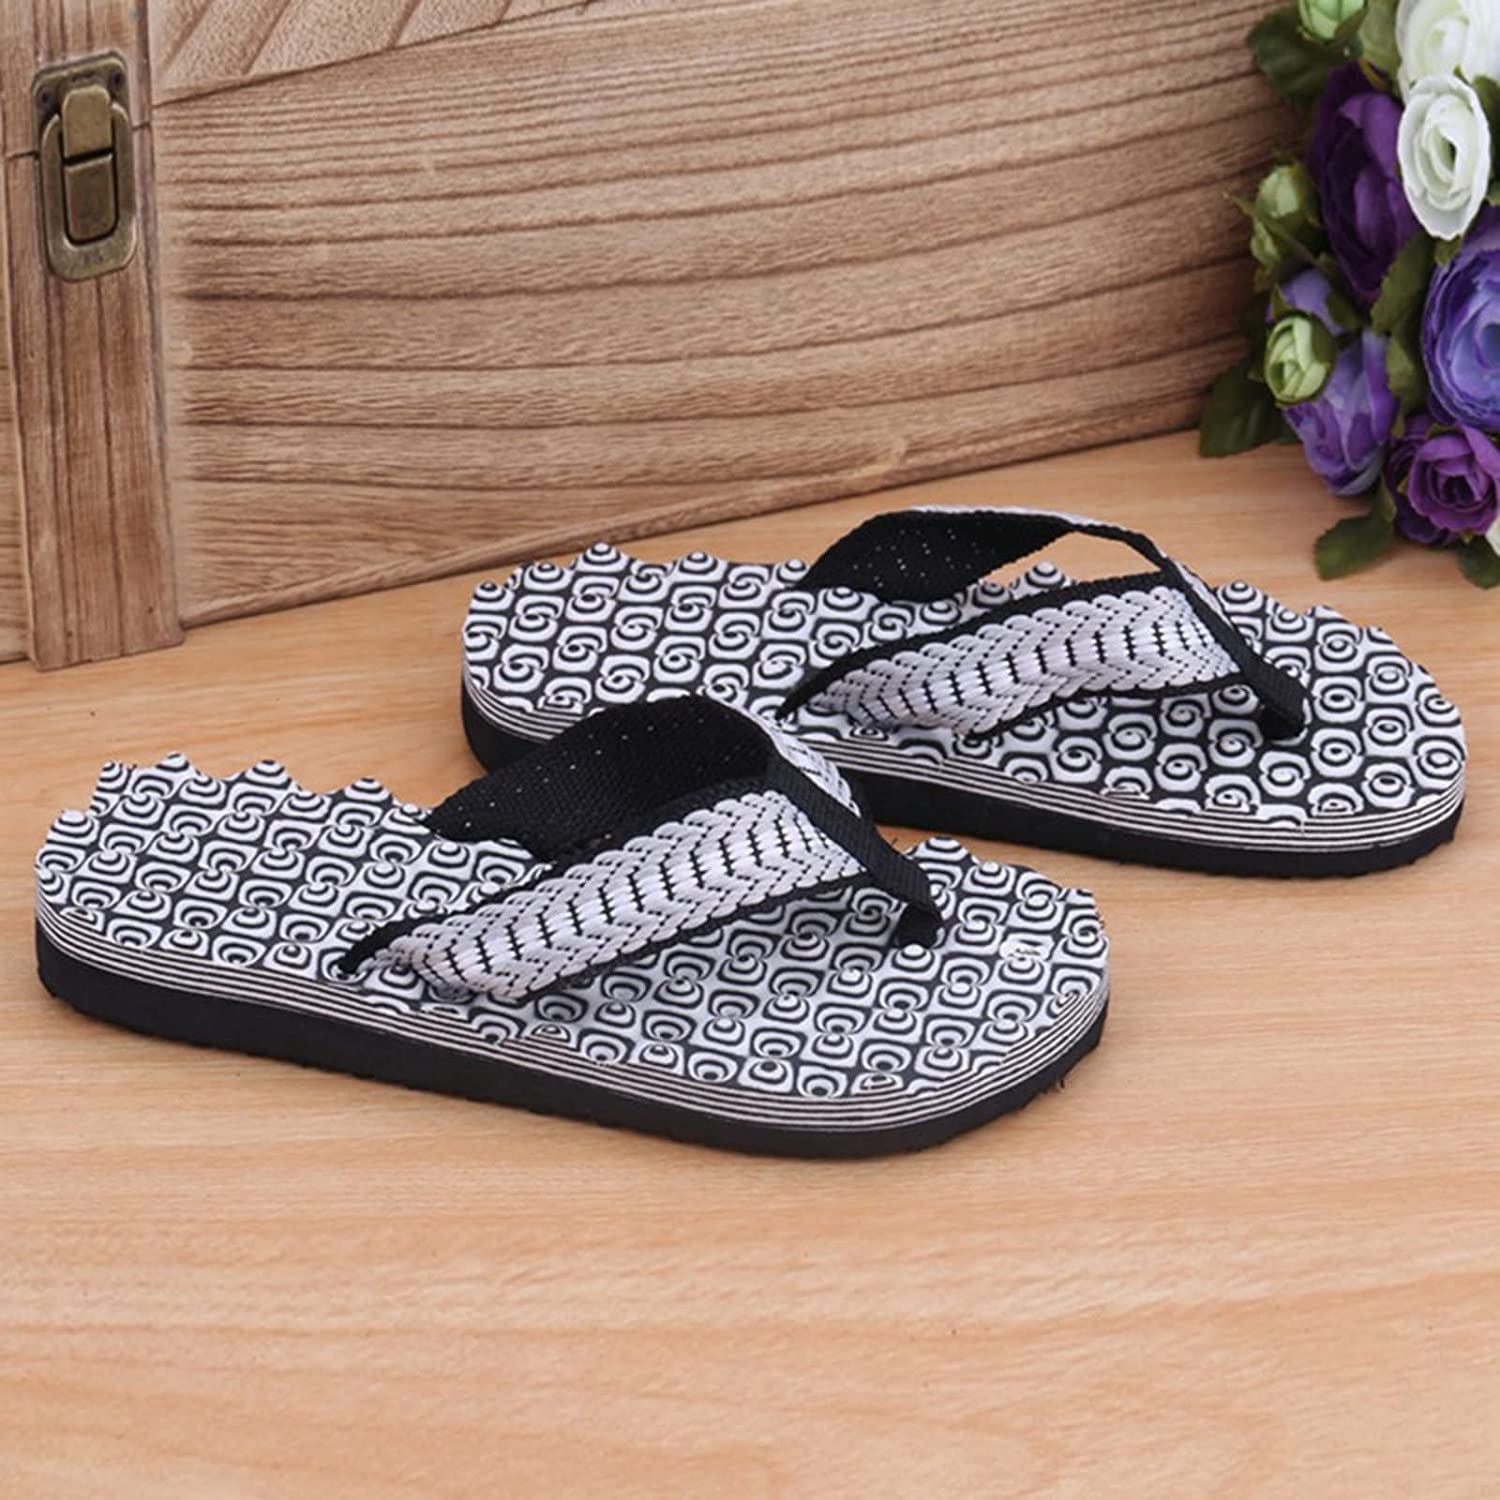 STVYtoy 2021 Indoor and Outdoor Men's Slippers Summer Flip Flops Men's Slippers Fashion Beach Casual Shoes Slippers Men Slides,D,41